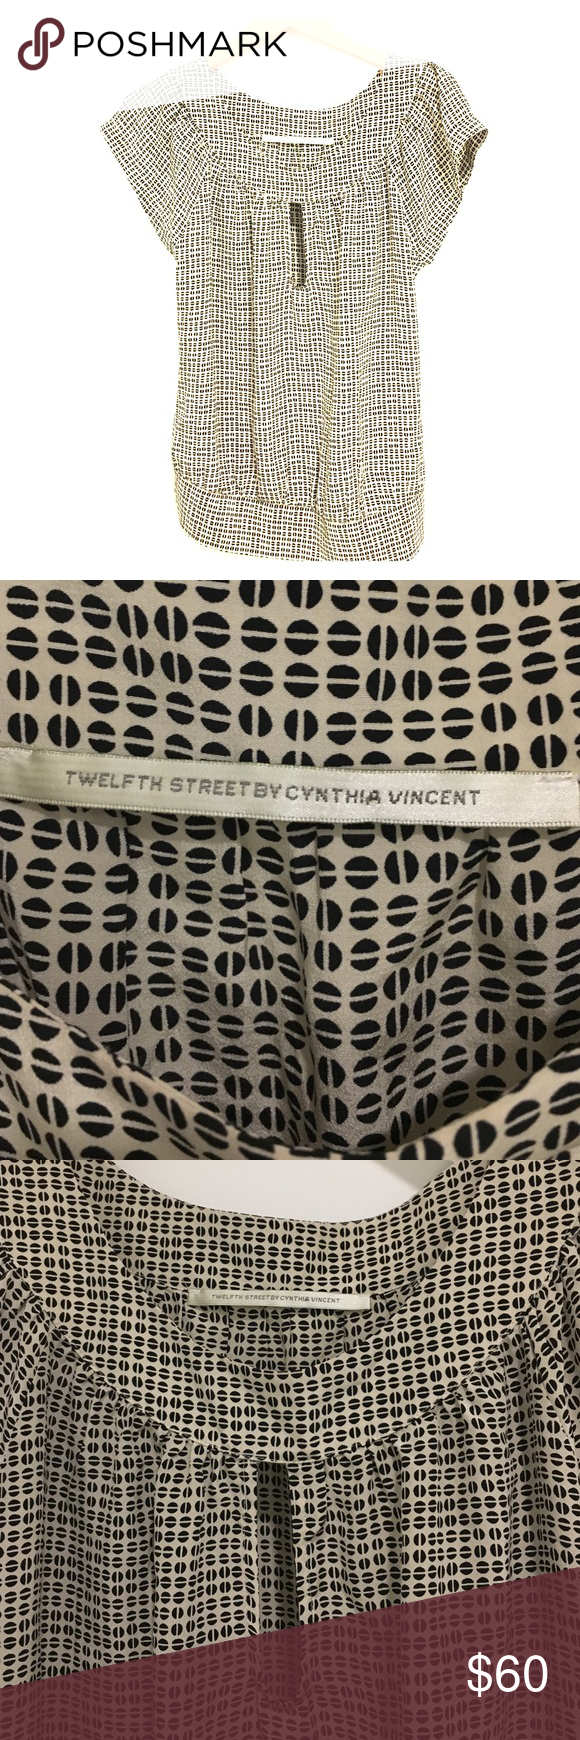 Silk top with key hole and geometric print Perfect condition Top by Twelfth Street by Cynthia Vincent Twelfth Street by Cynthia Vincent Tops Blouses